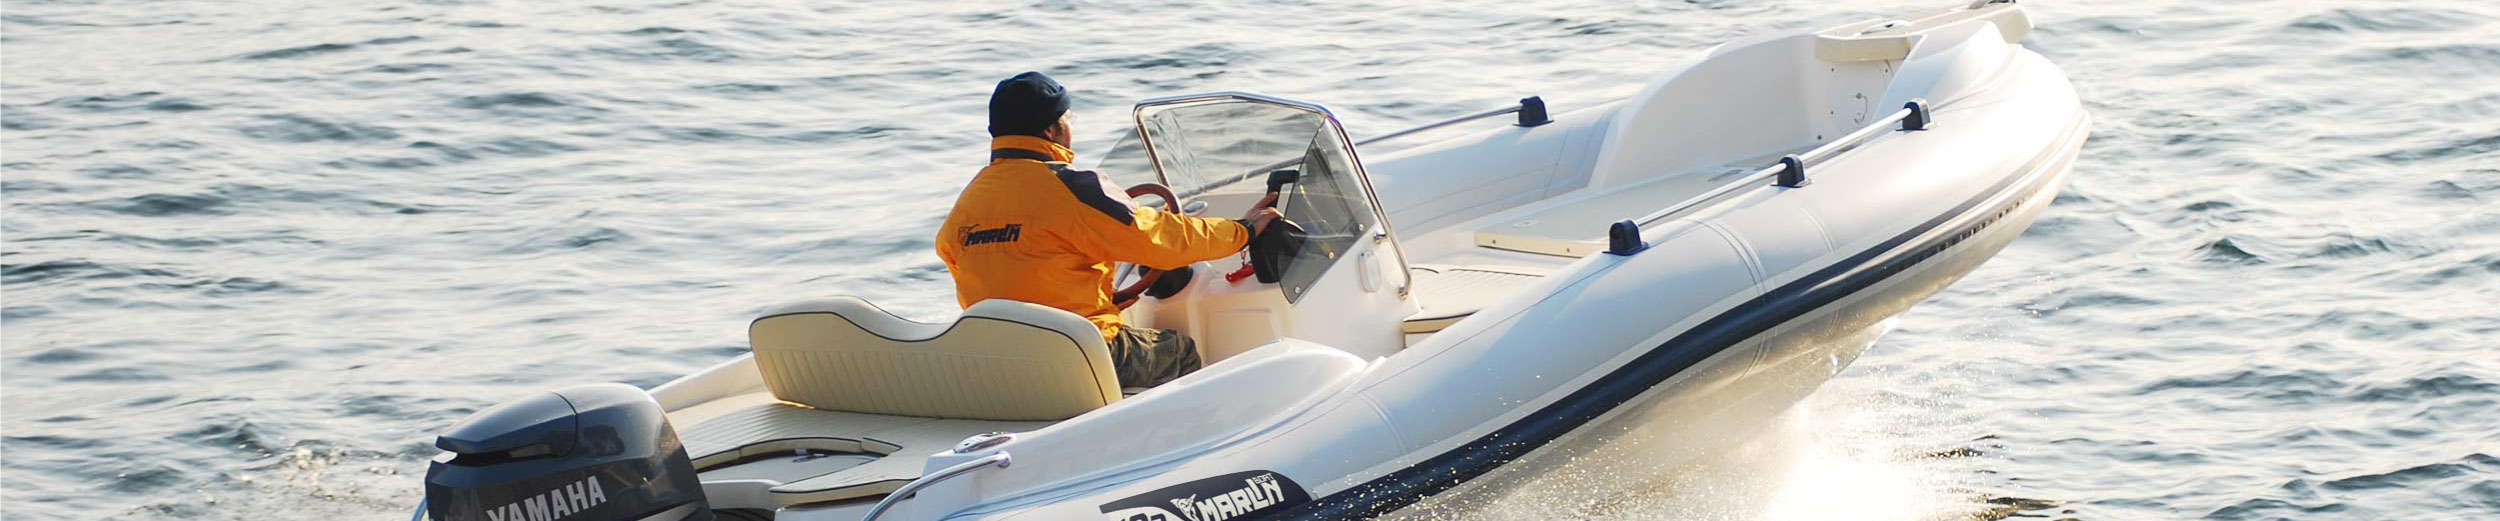 Marlin Boat - Outboard model  182